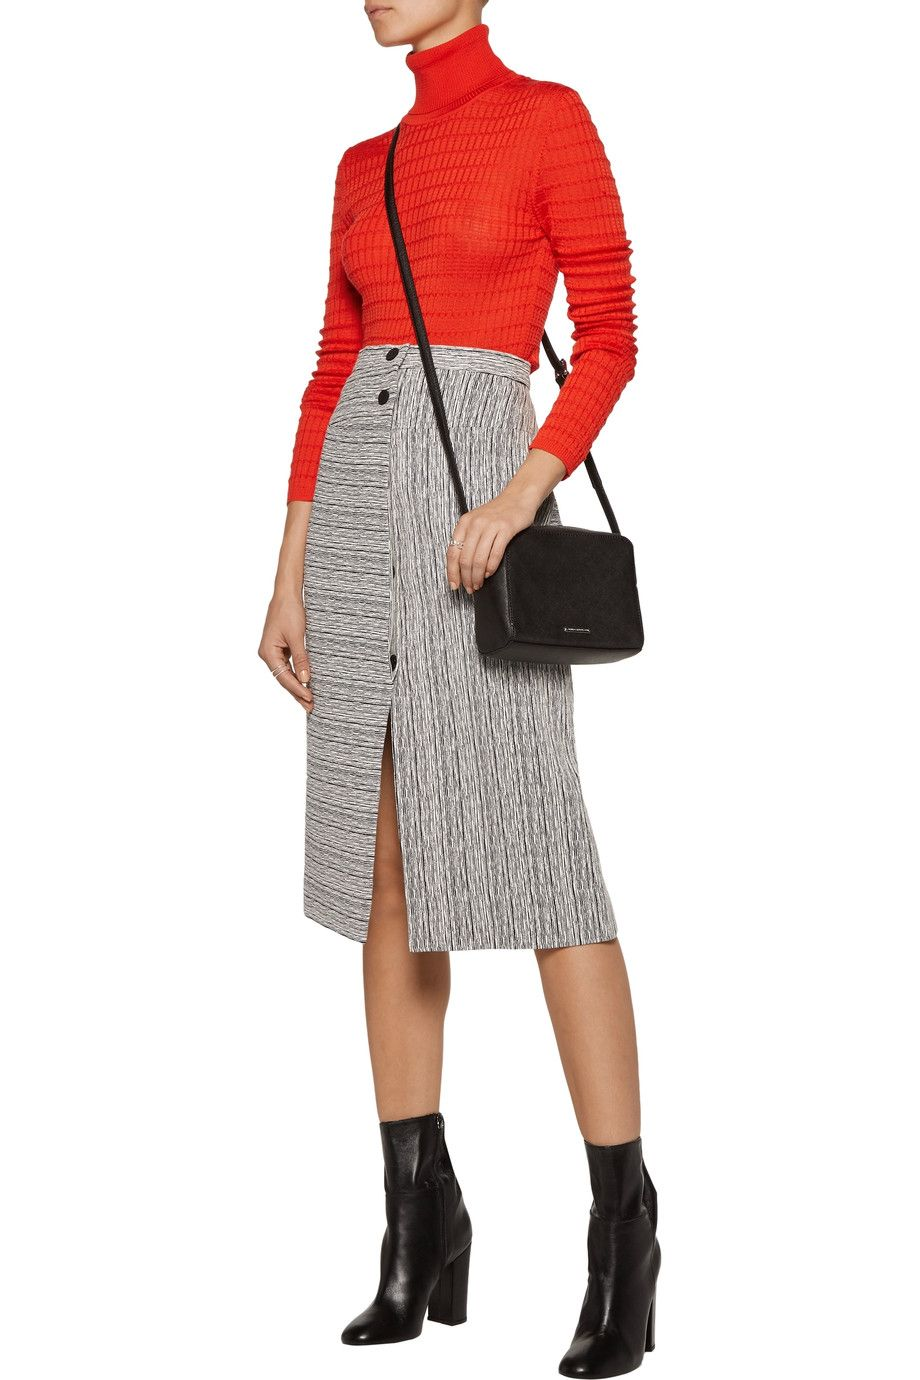 Shop on-sale Carven Fantaisie textured-jacquard midi skirt. Browse other discount designer Skirts & more on The Most Fashionable Fashion Outlet, THE OUTNET.COM